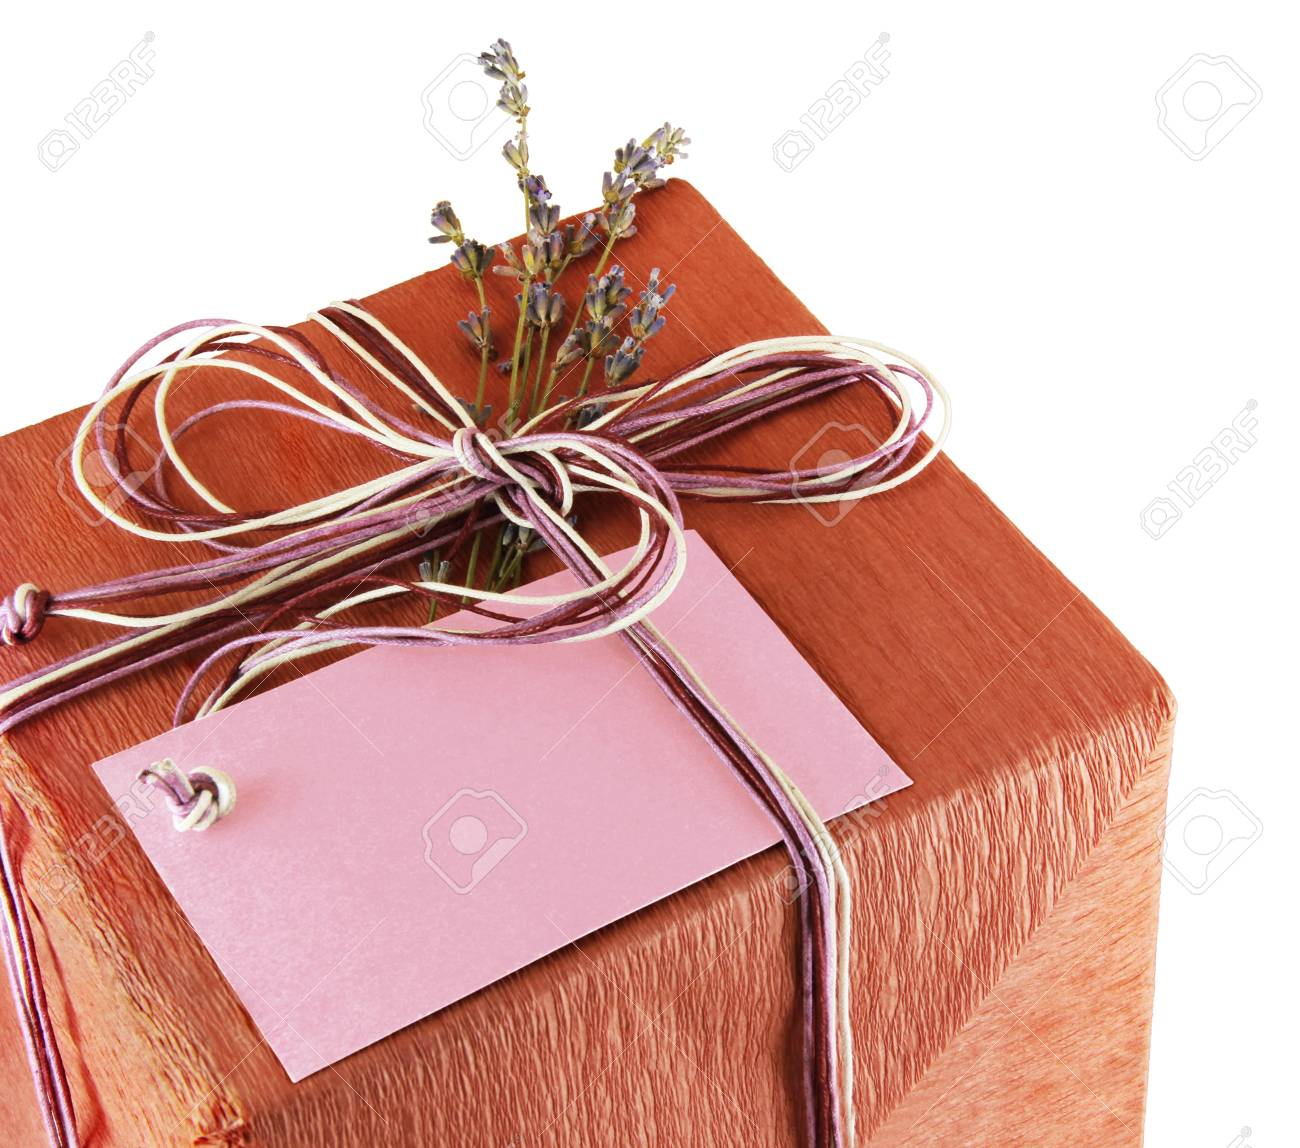 Present box whith lavander flower in vintage stile on a white background Stock Photo - 18776295